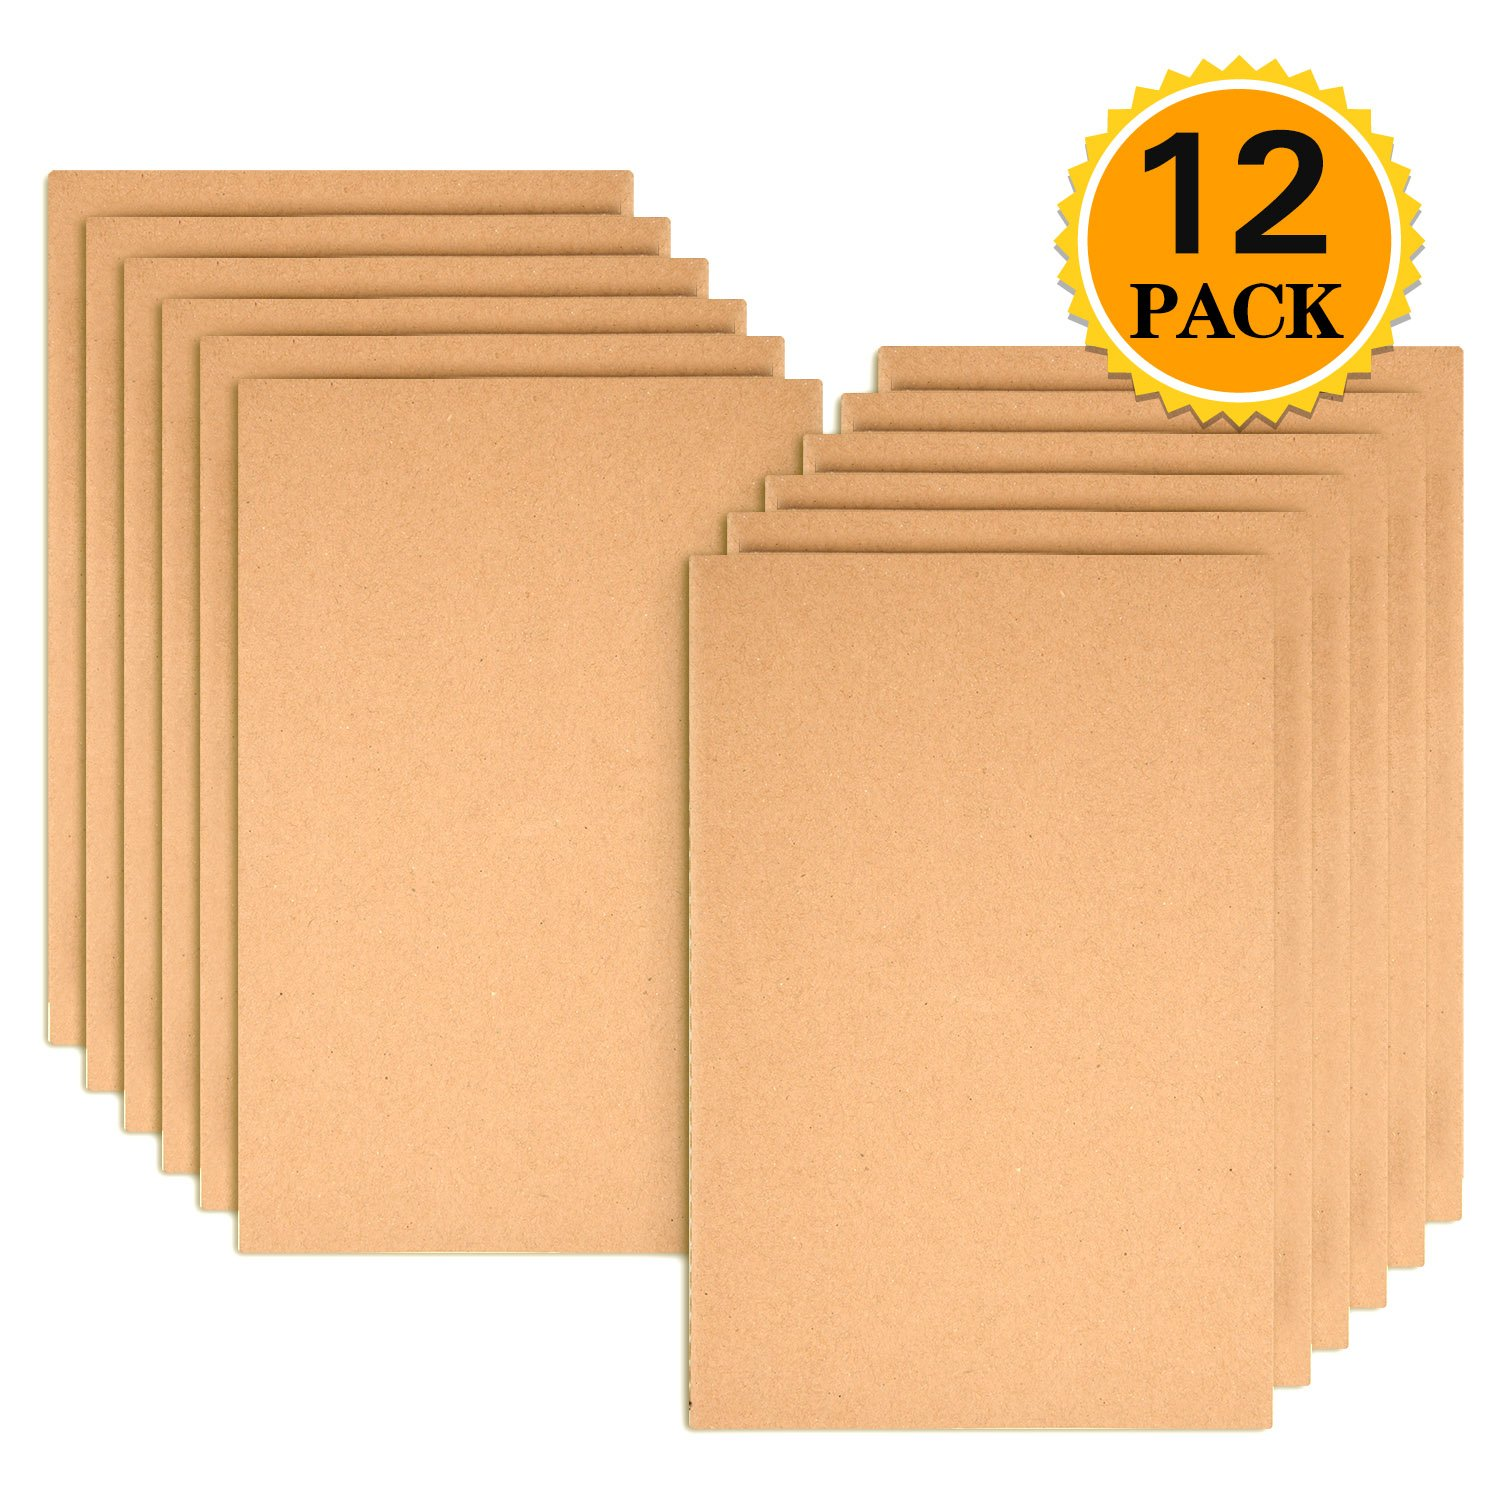 Zealor 12 Pack Notebook Journals for Travelers Kraft Brown Cover Notepad, A5 Size Paper (8.25'' x 5.5''), 30 Sheets/60 Lined Pages